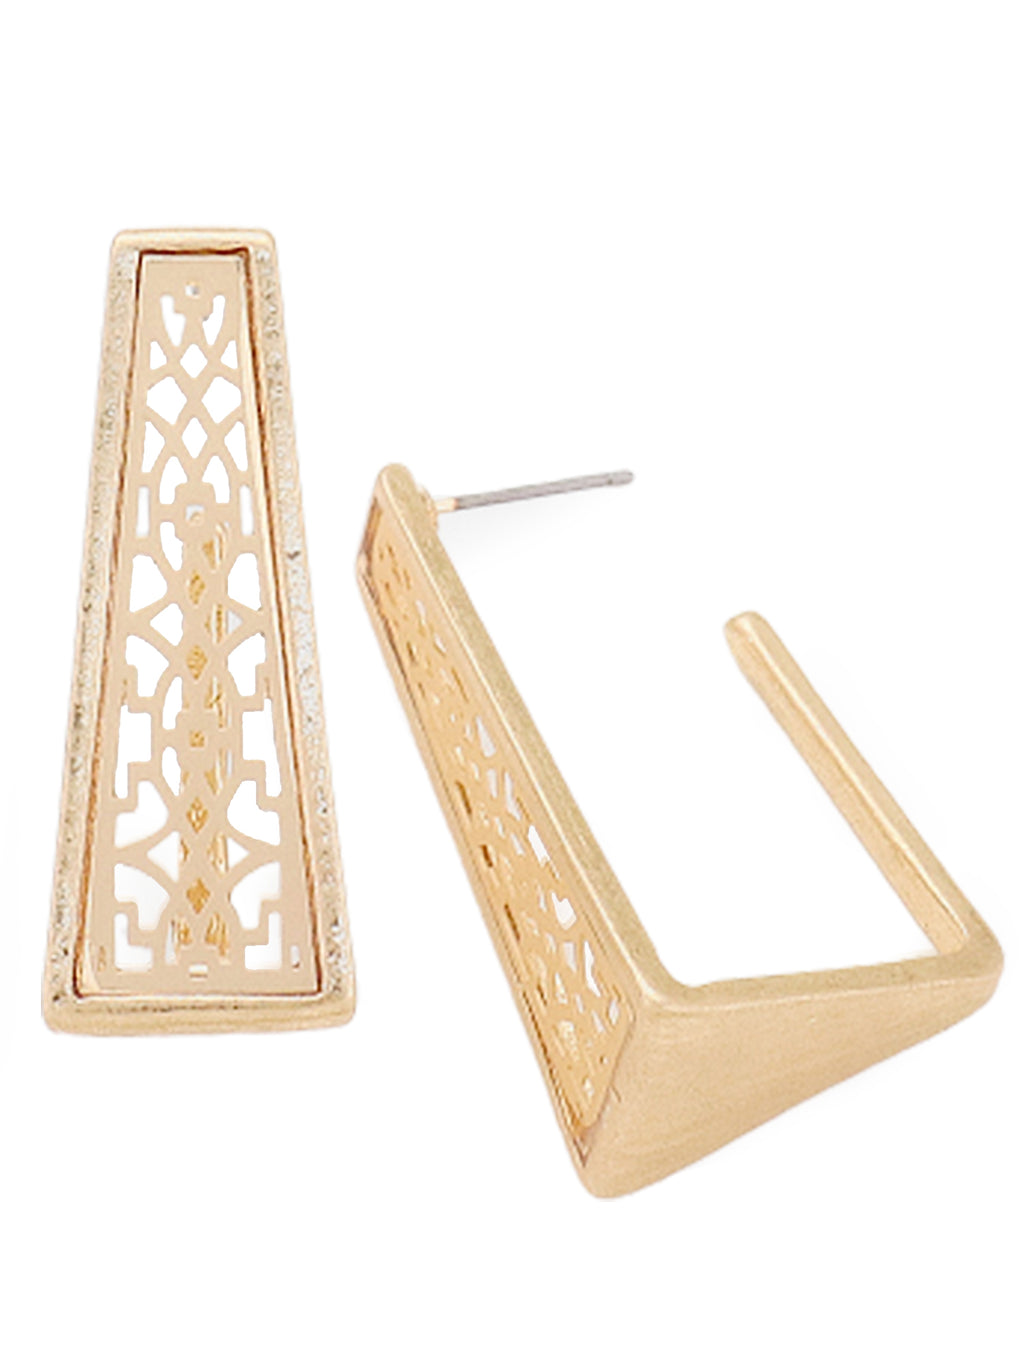 Antique Filigree Laser Cut Square Cuff Earrings